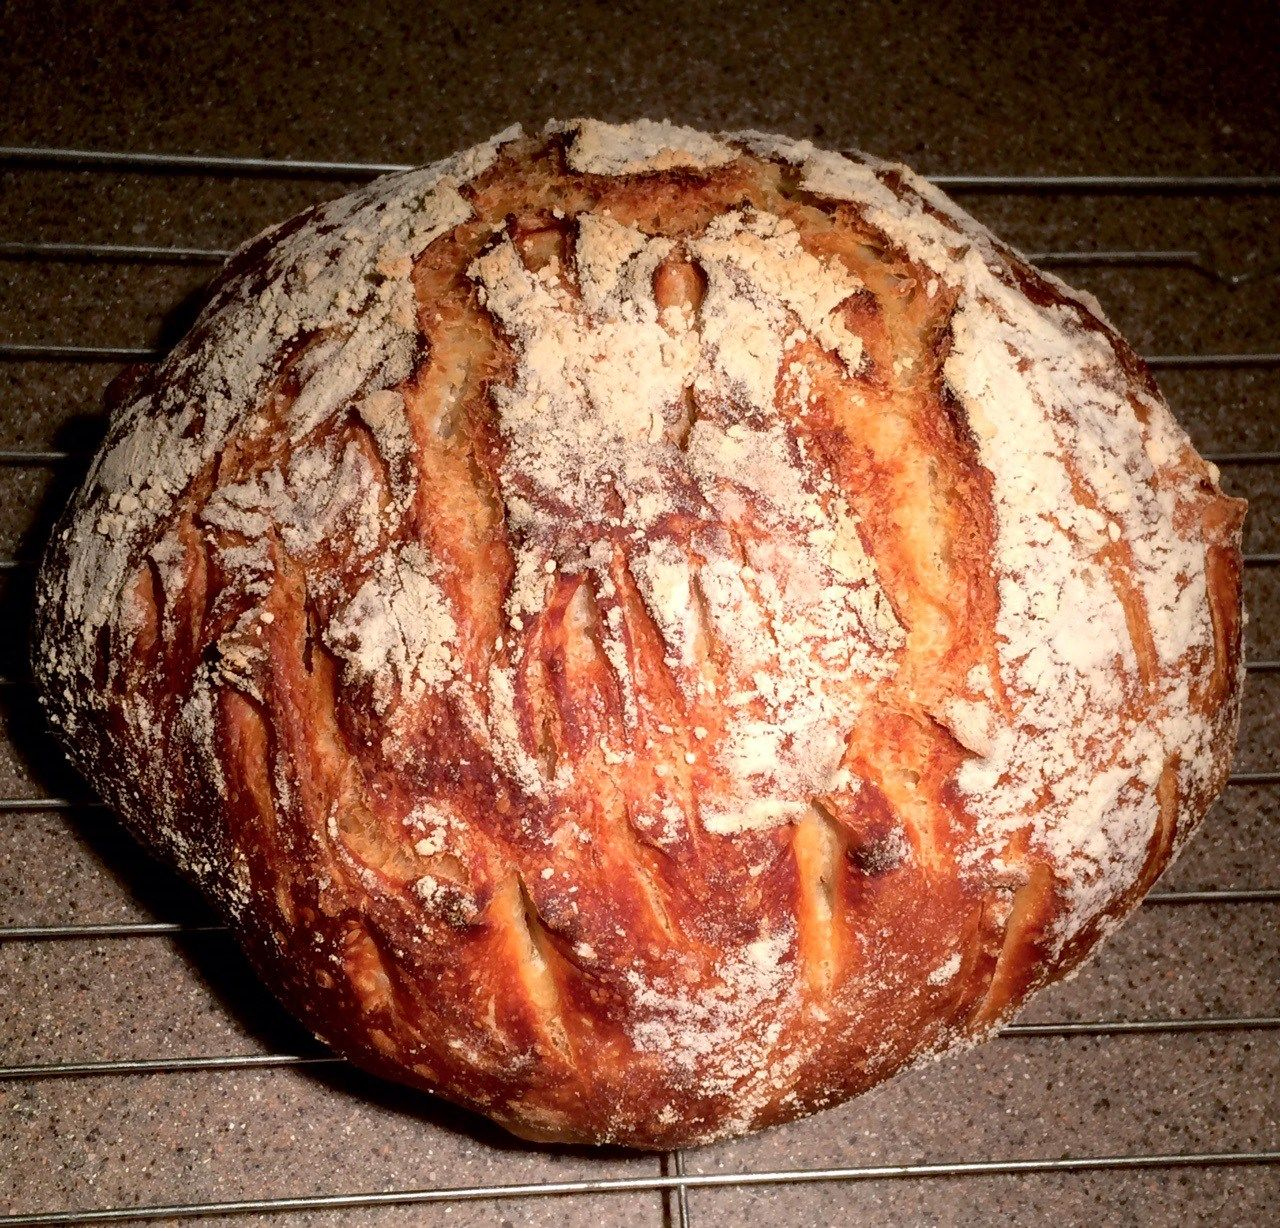 Easy home-made Dutch Oven bread recipe for light and airy bread with a golden brown crispy crust. Amazing taste! Small amount of ingredients, easy to make!